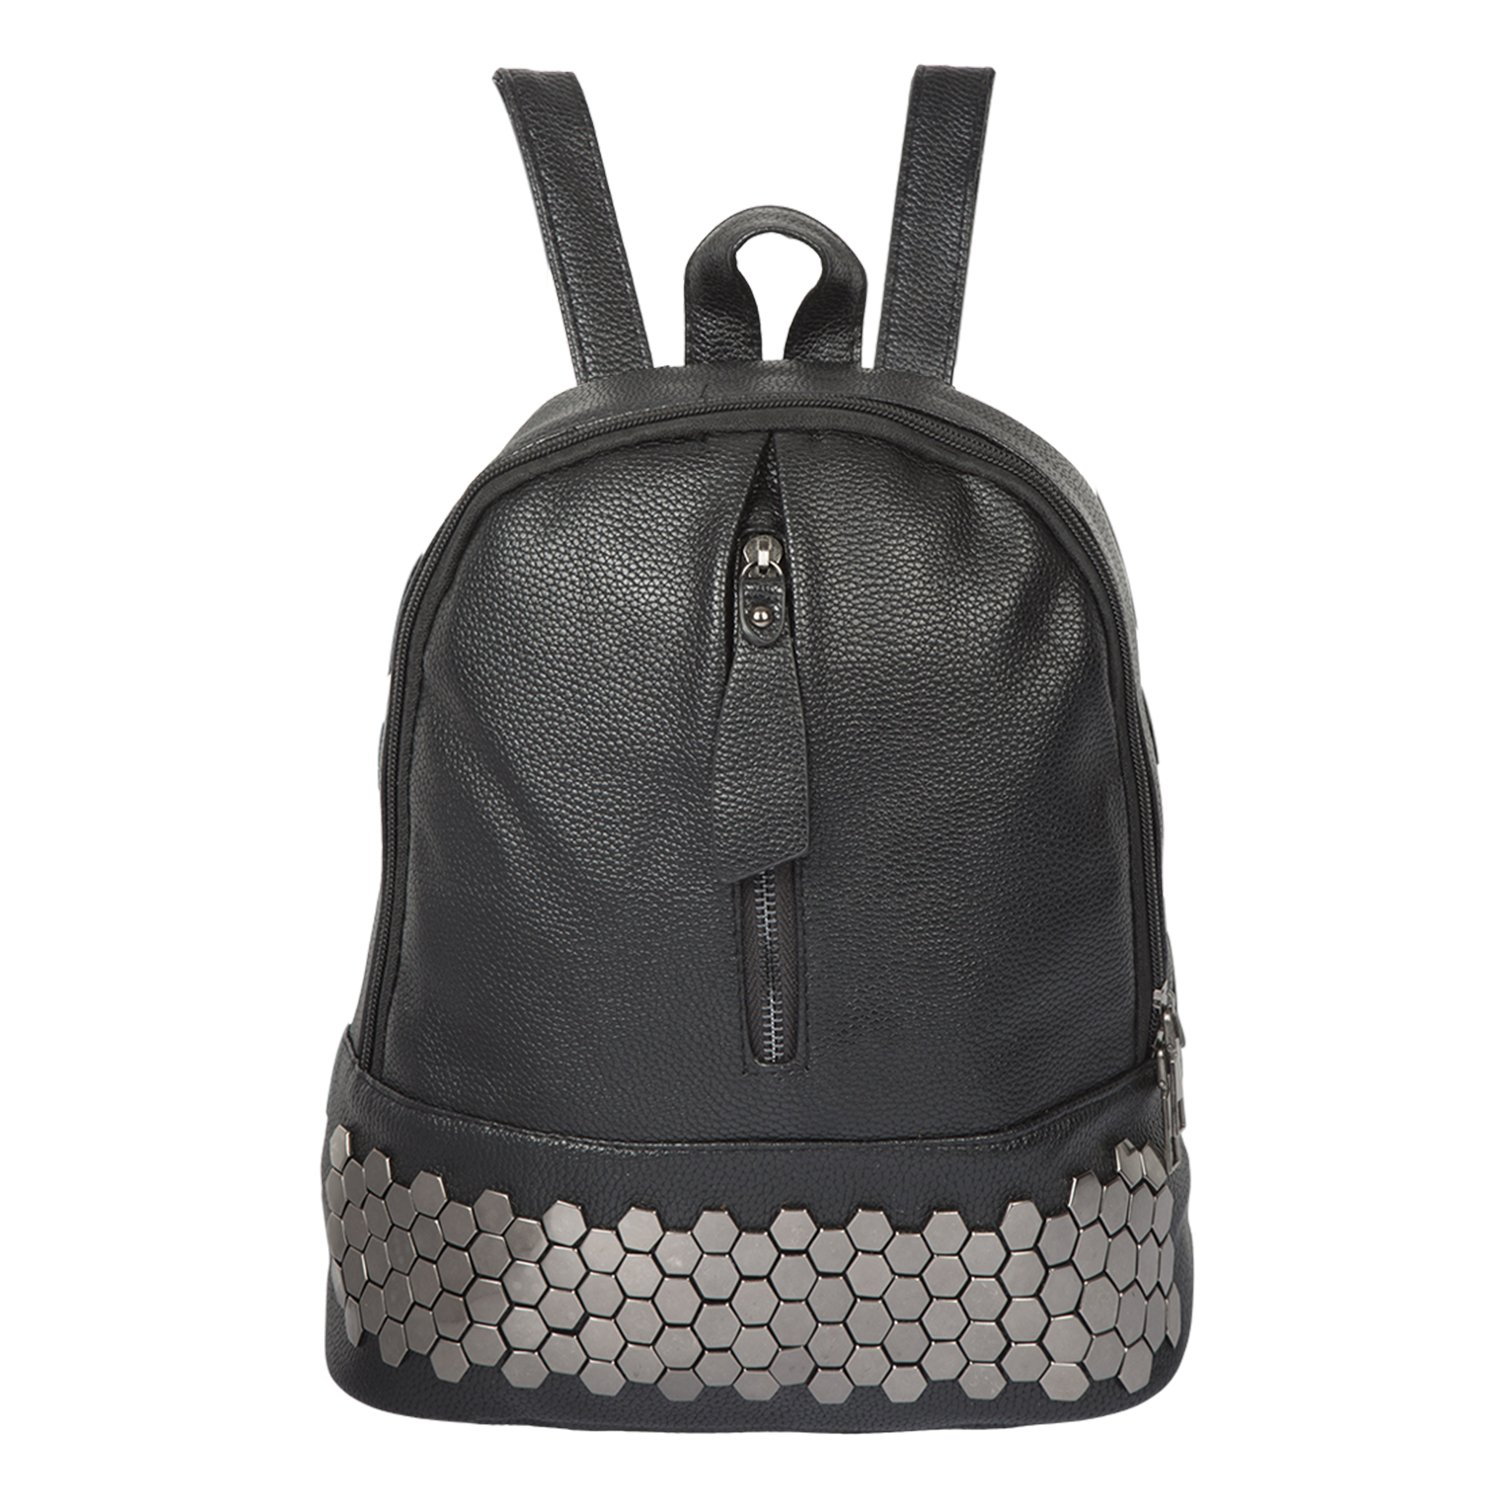 6b03b148a8 Buy AllExtreme Women Leather Backpack for Girls   Ladies - Stylish Fashion  Shoulder Bag PU Leather Rucksack Travel Bag Online at Low Prices in India  ...